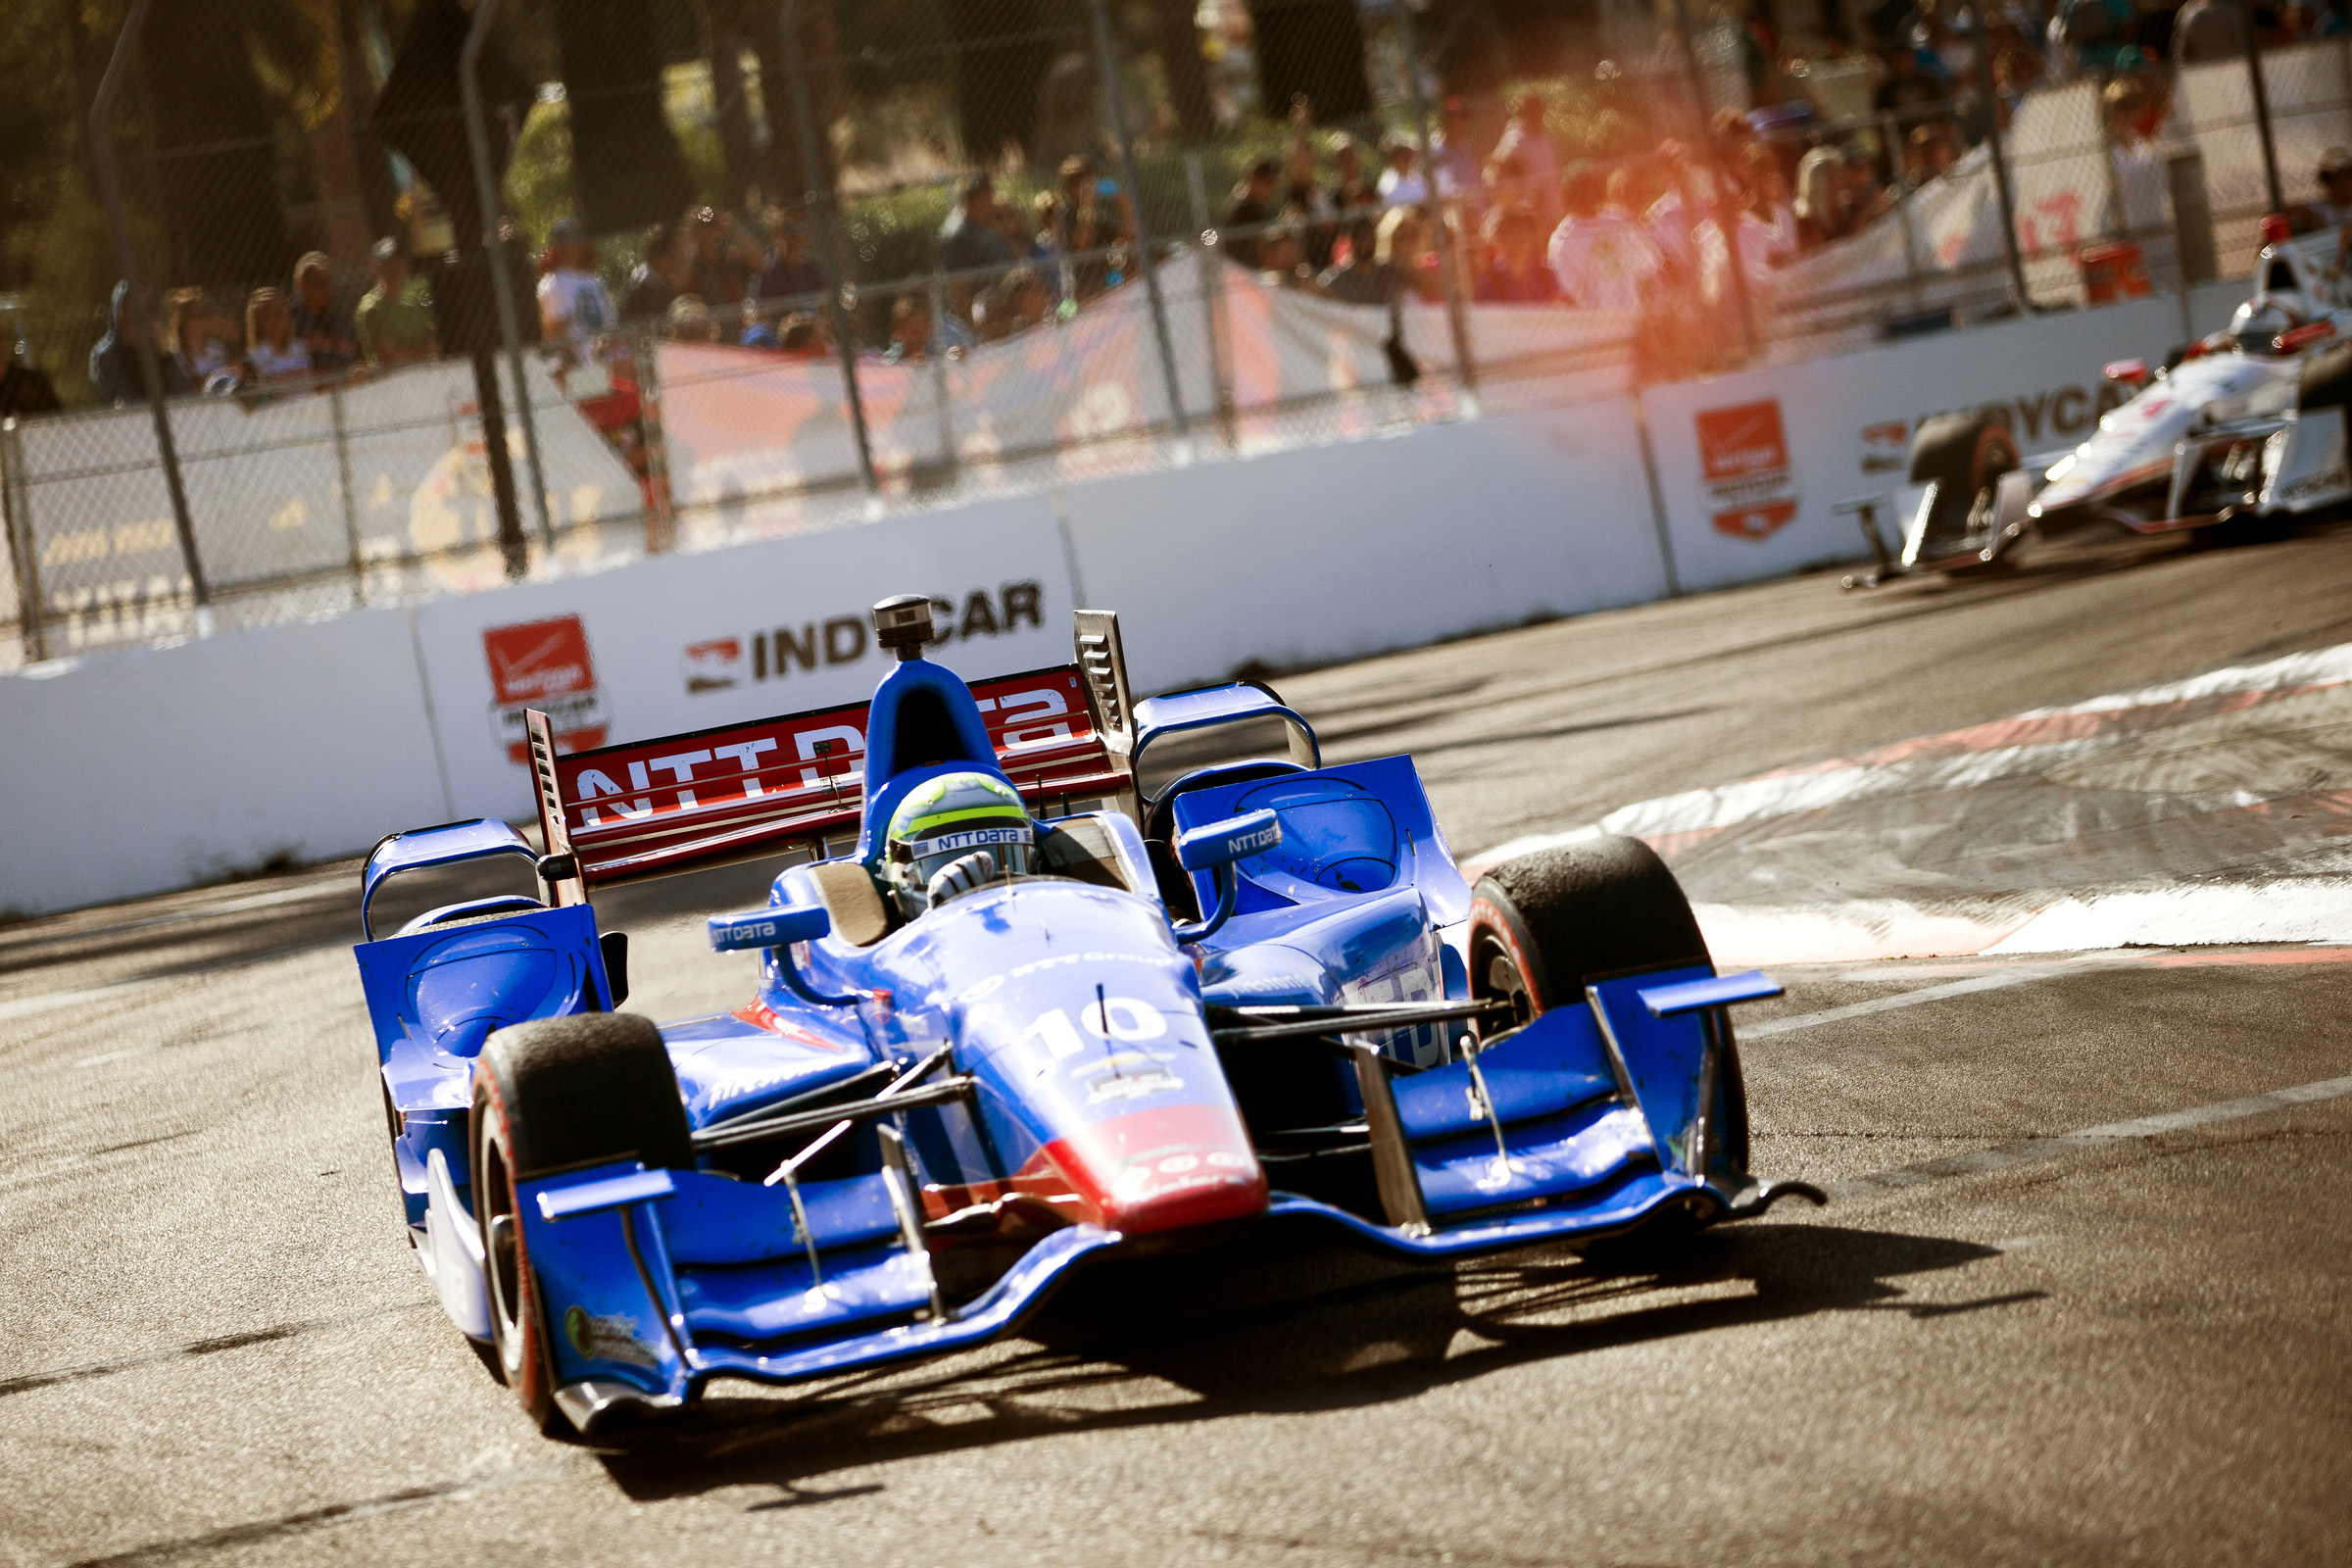 ST. PETERSBURG, FL - March 29, 2015 -- IndyCar driver Tony Kanaan participates in the St. Pete Grand Prix in downtown St. Petersburg, Florida. (PHOTO / CHIP LITHERLAND)